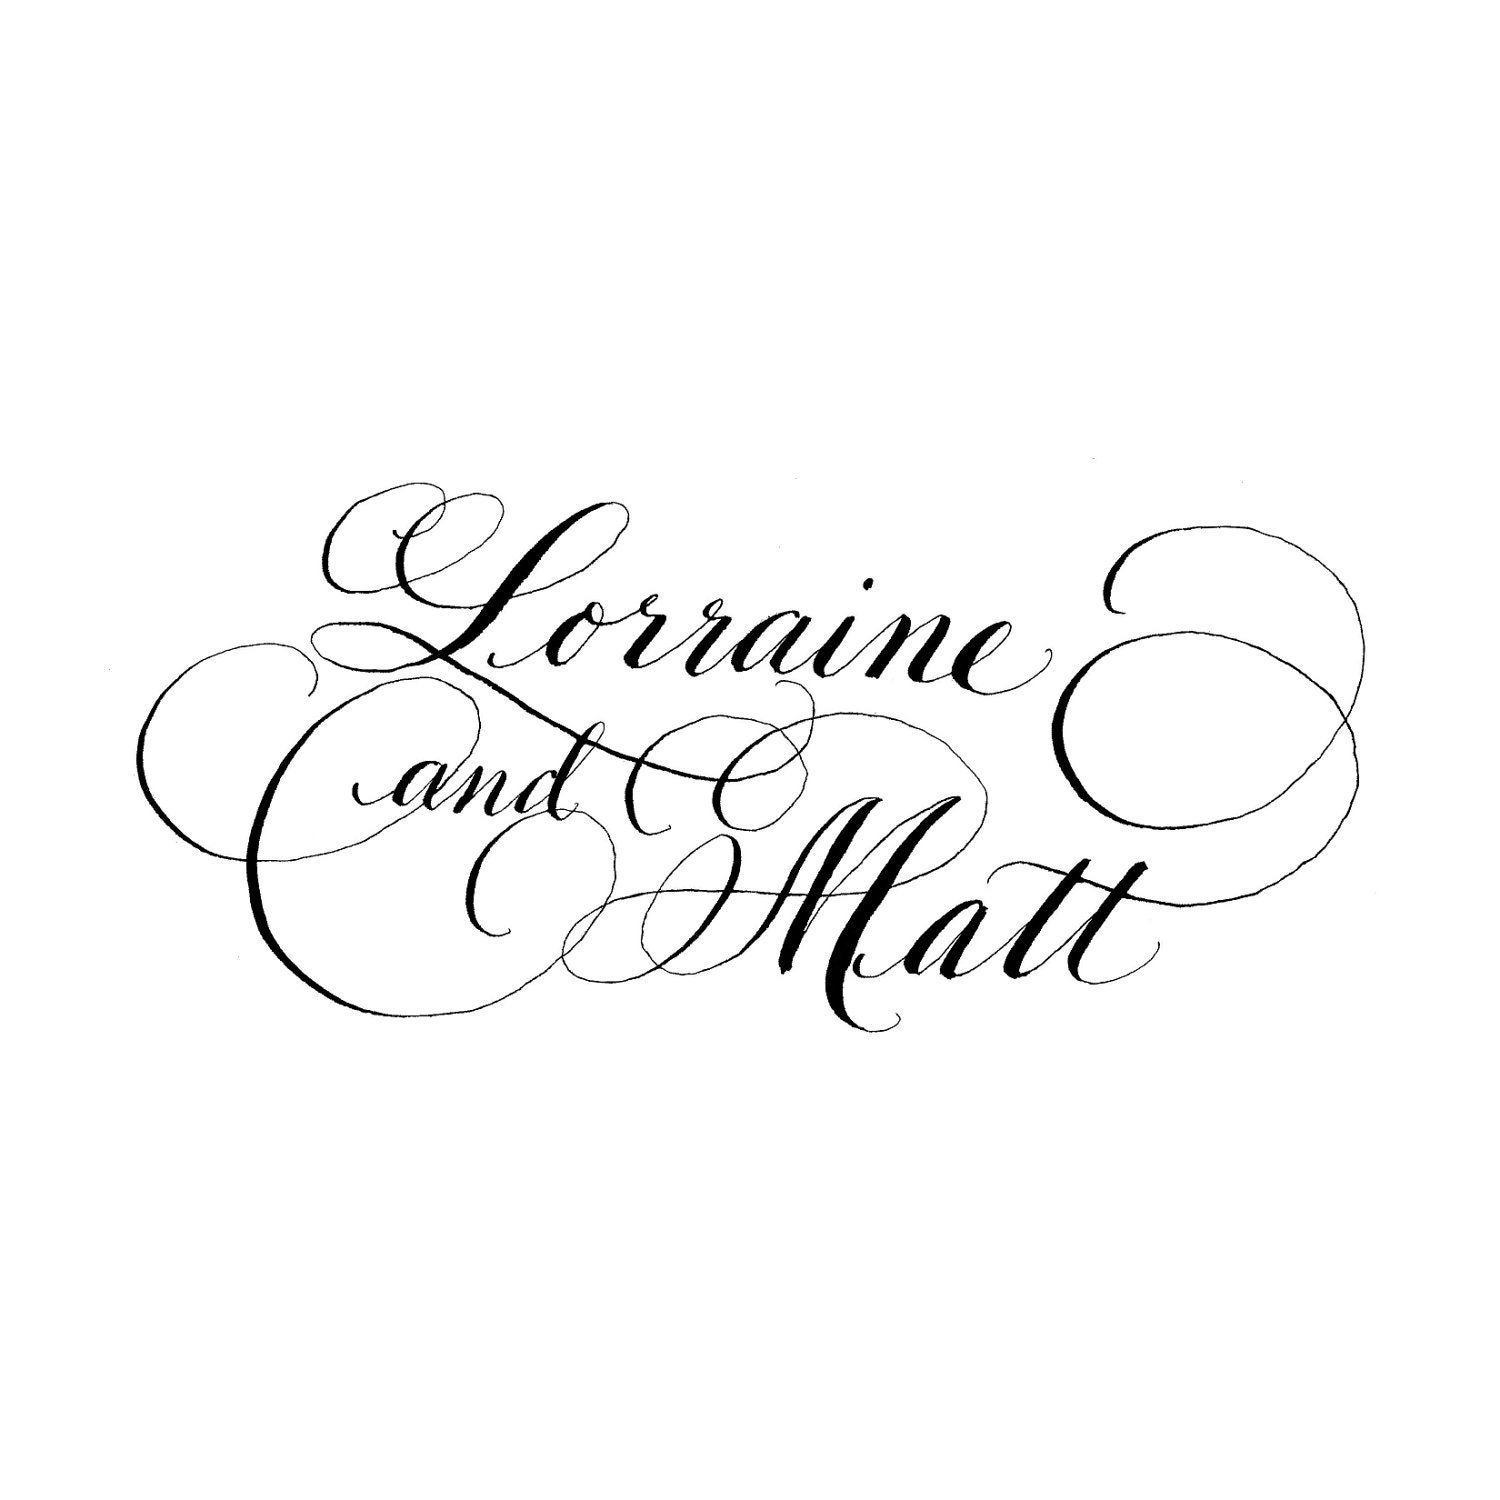 Wedding calligraphy bride and groom logo diy calligraphy Calligraphy logo